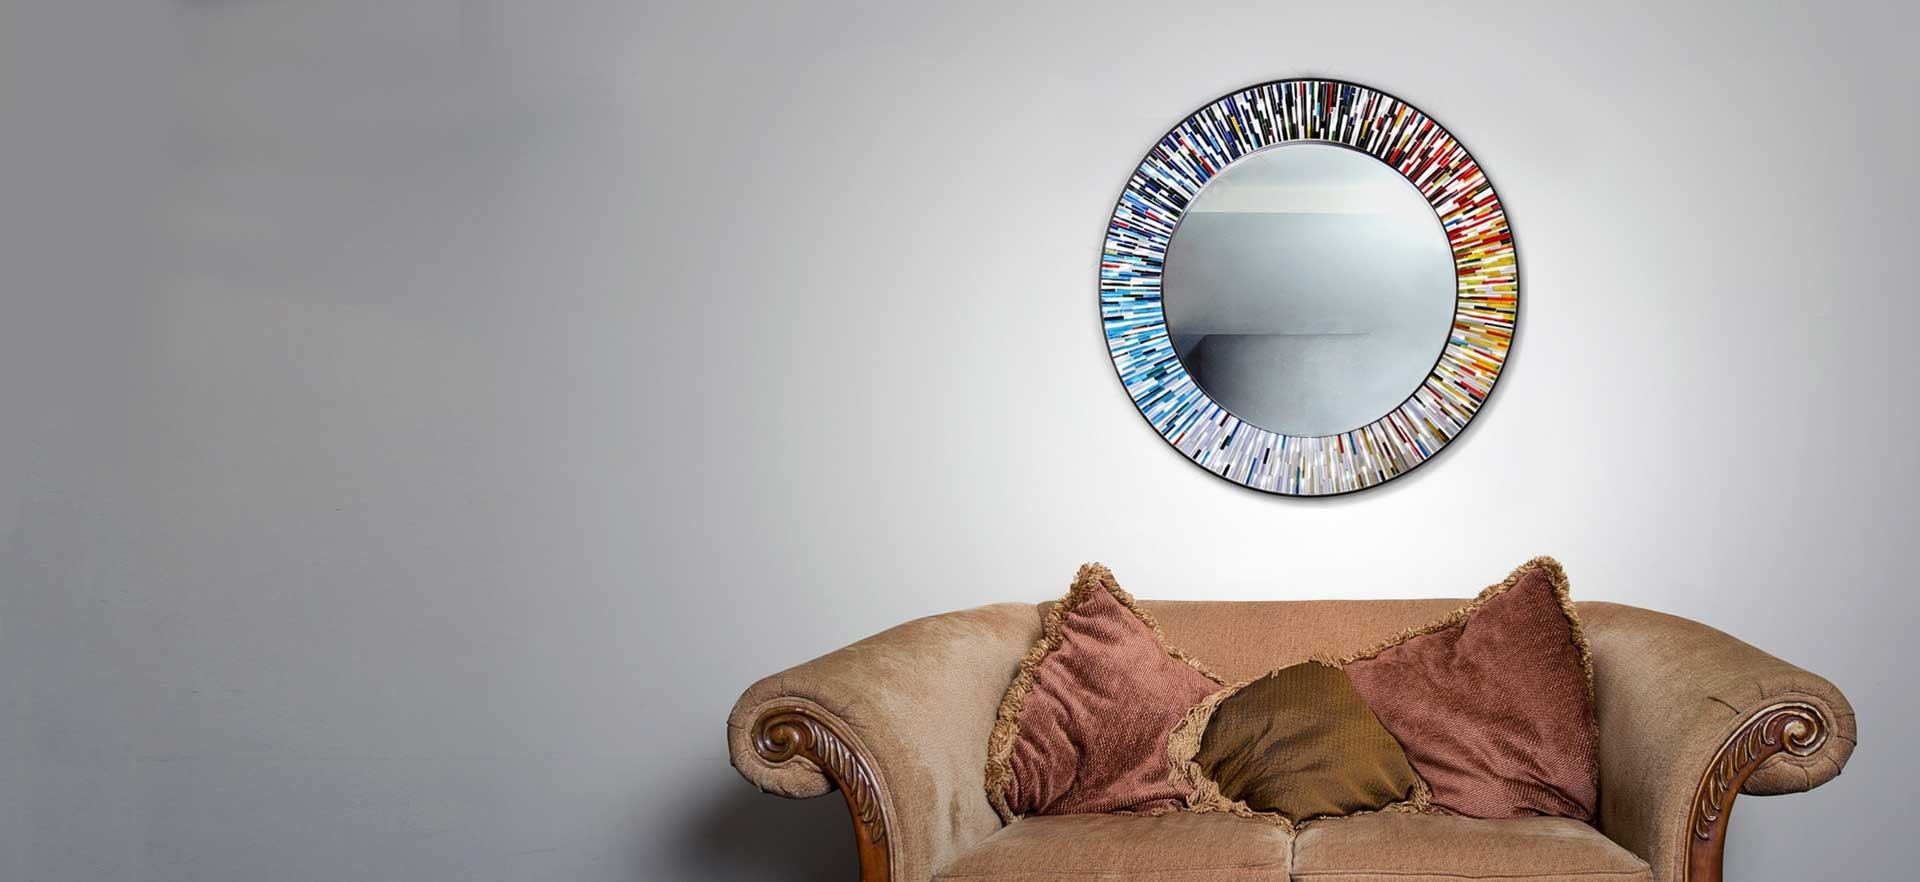 Luxury interior accessories: mirrors